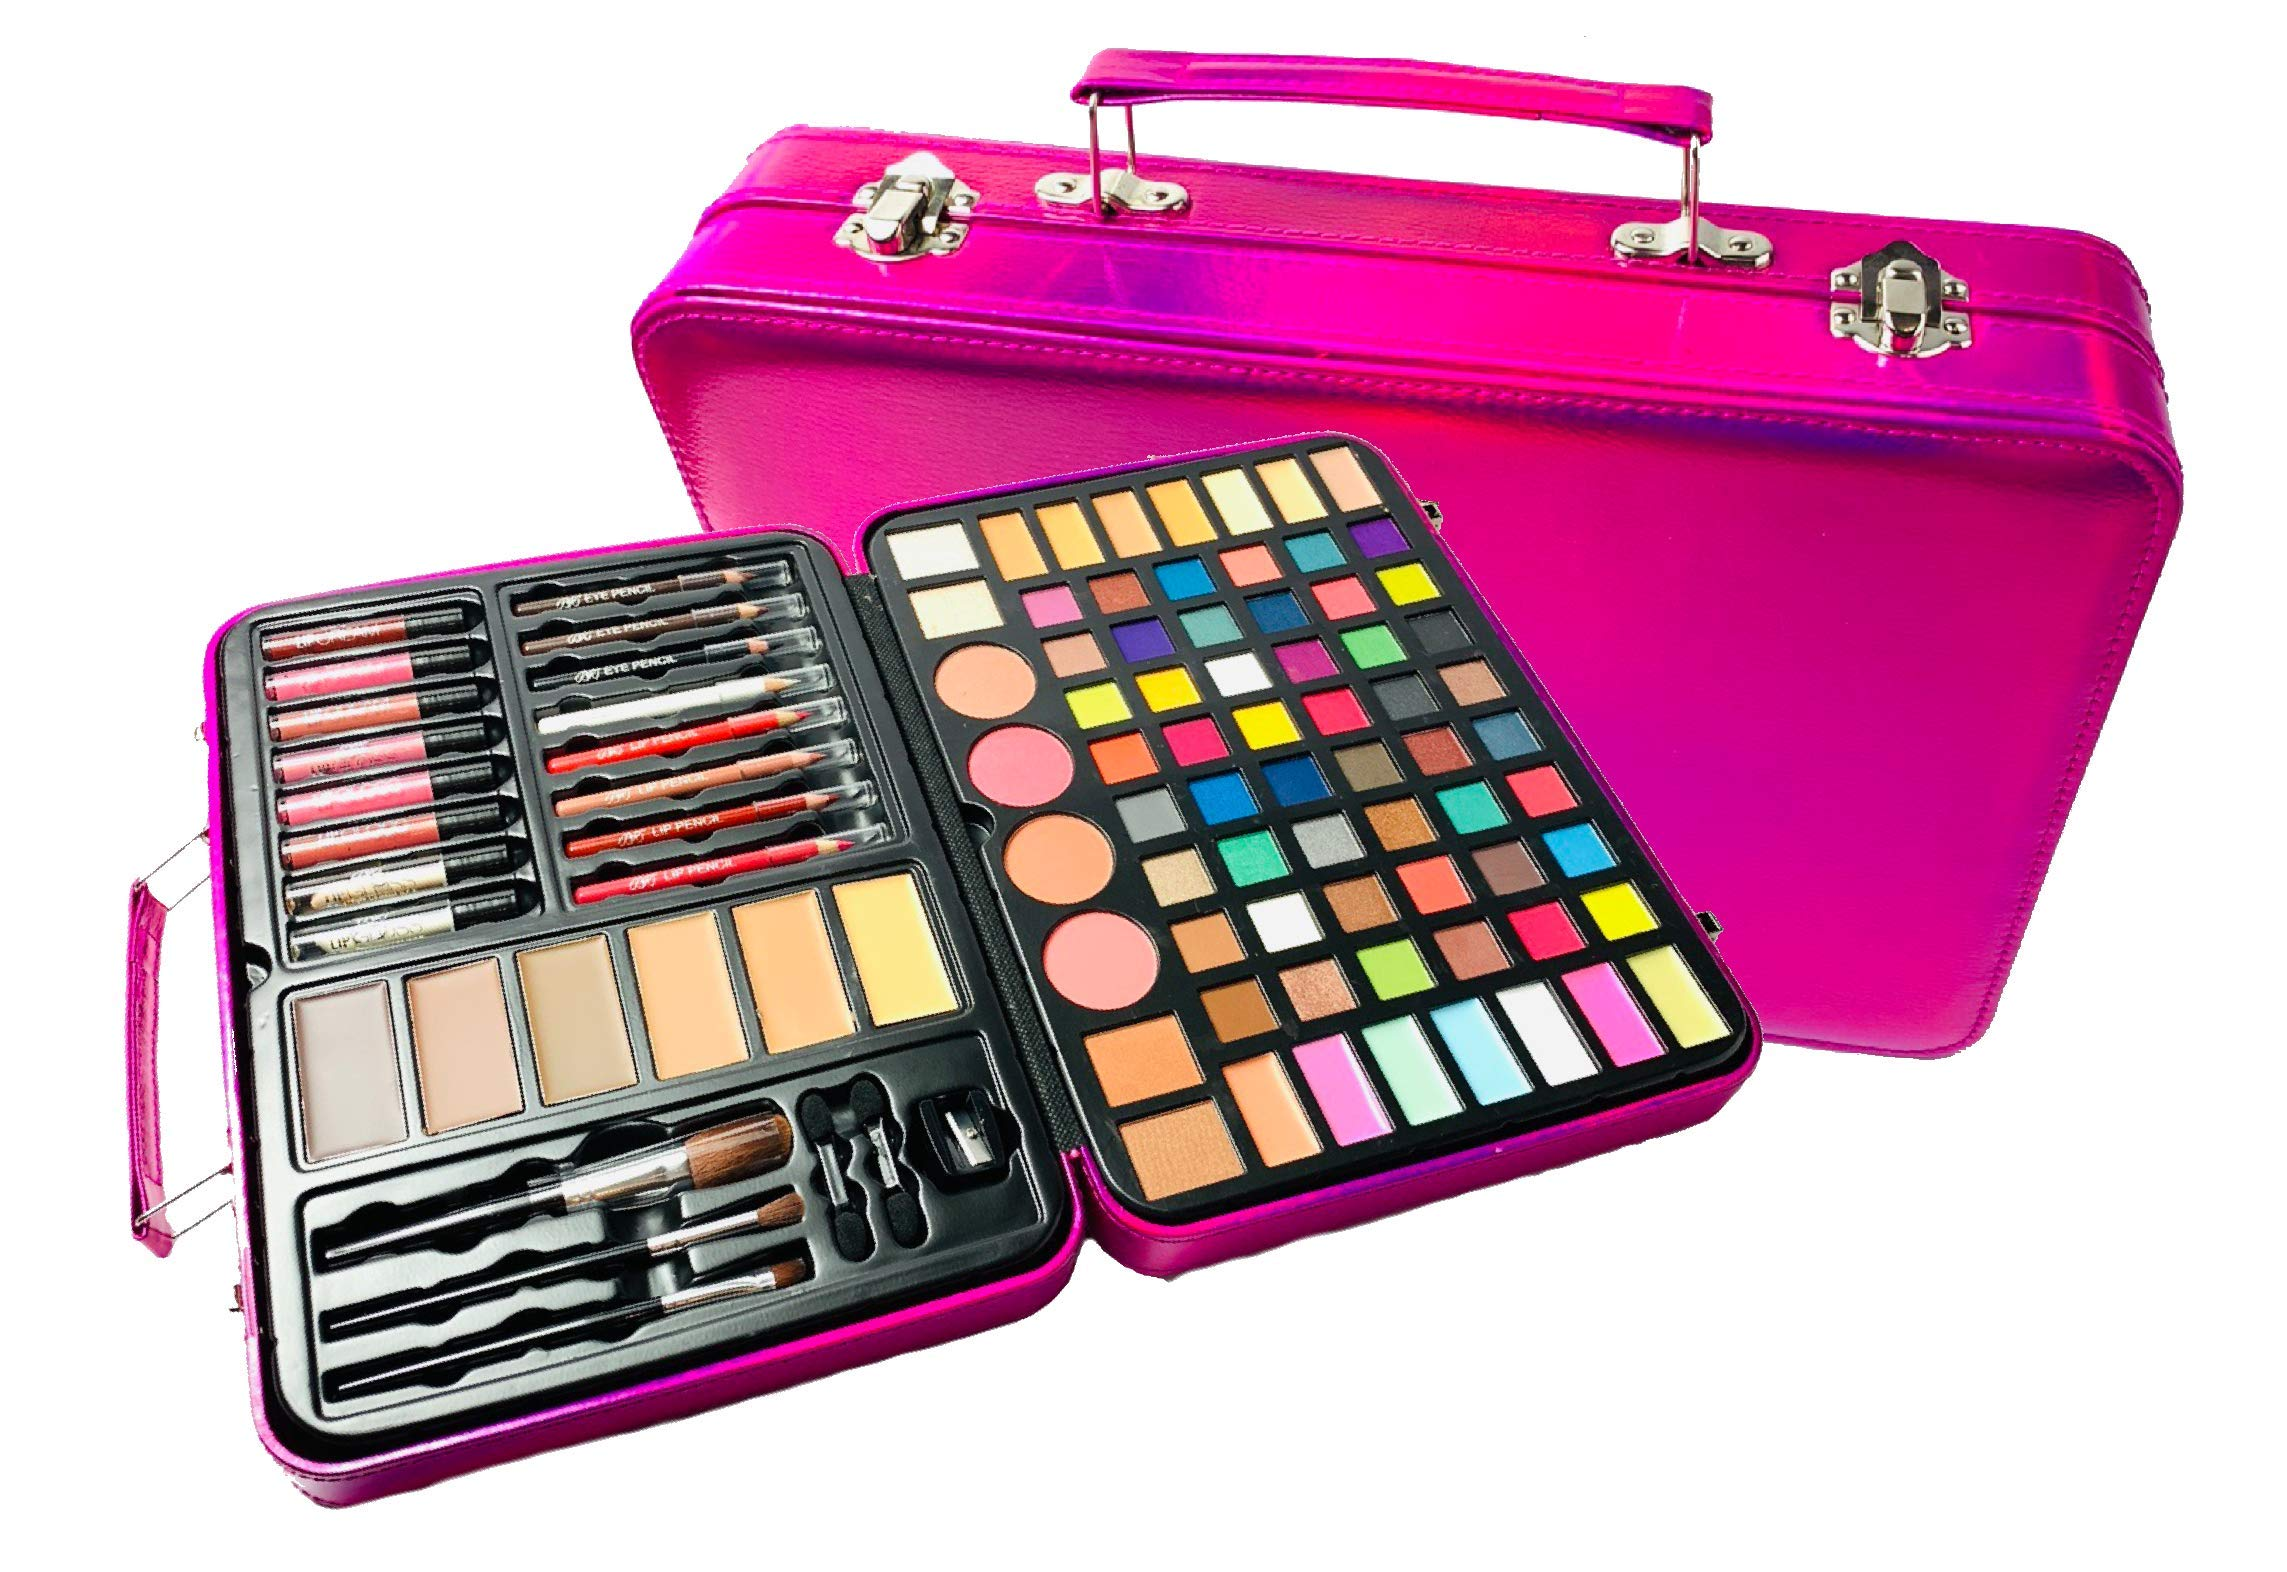 BR Carry All Trunk Professional Makeup Kit - Eyeshadow, Eyeliner, Lip Stick All In One Clear Case (RedCase) by BR (Image #1)